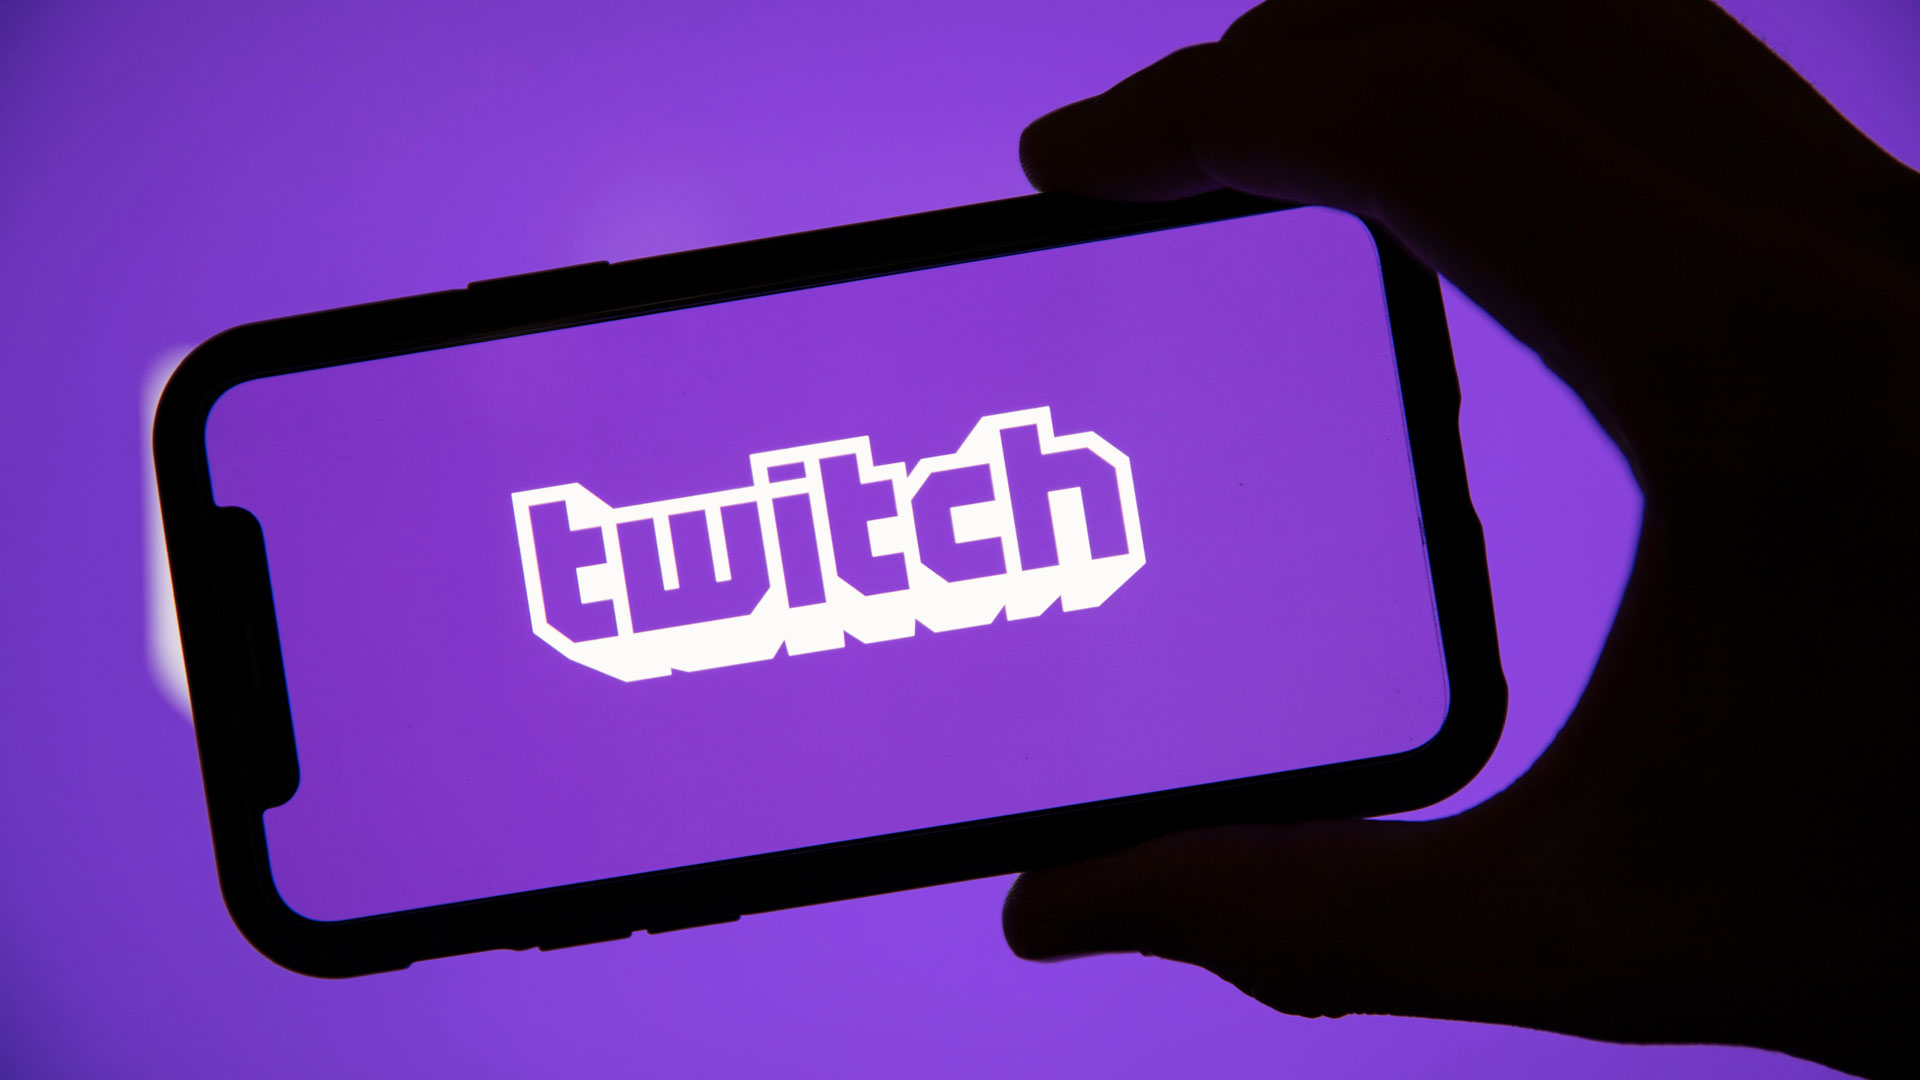 Twitch Marketing: What Brands Need To Know